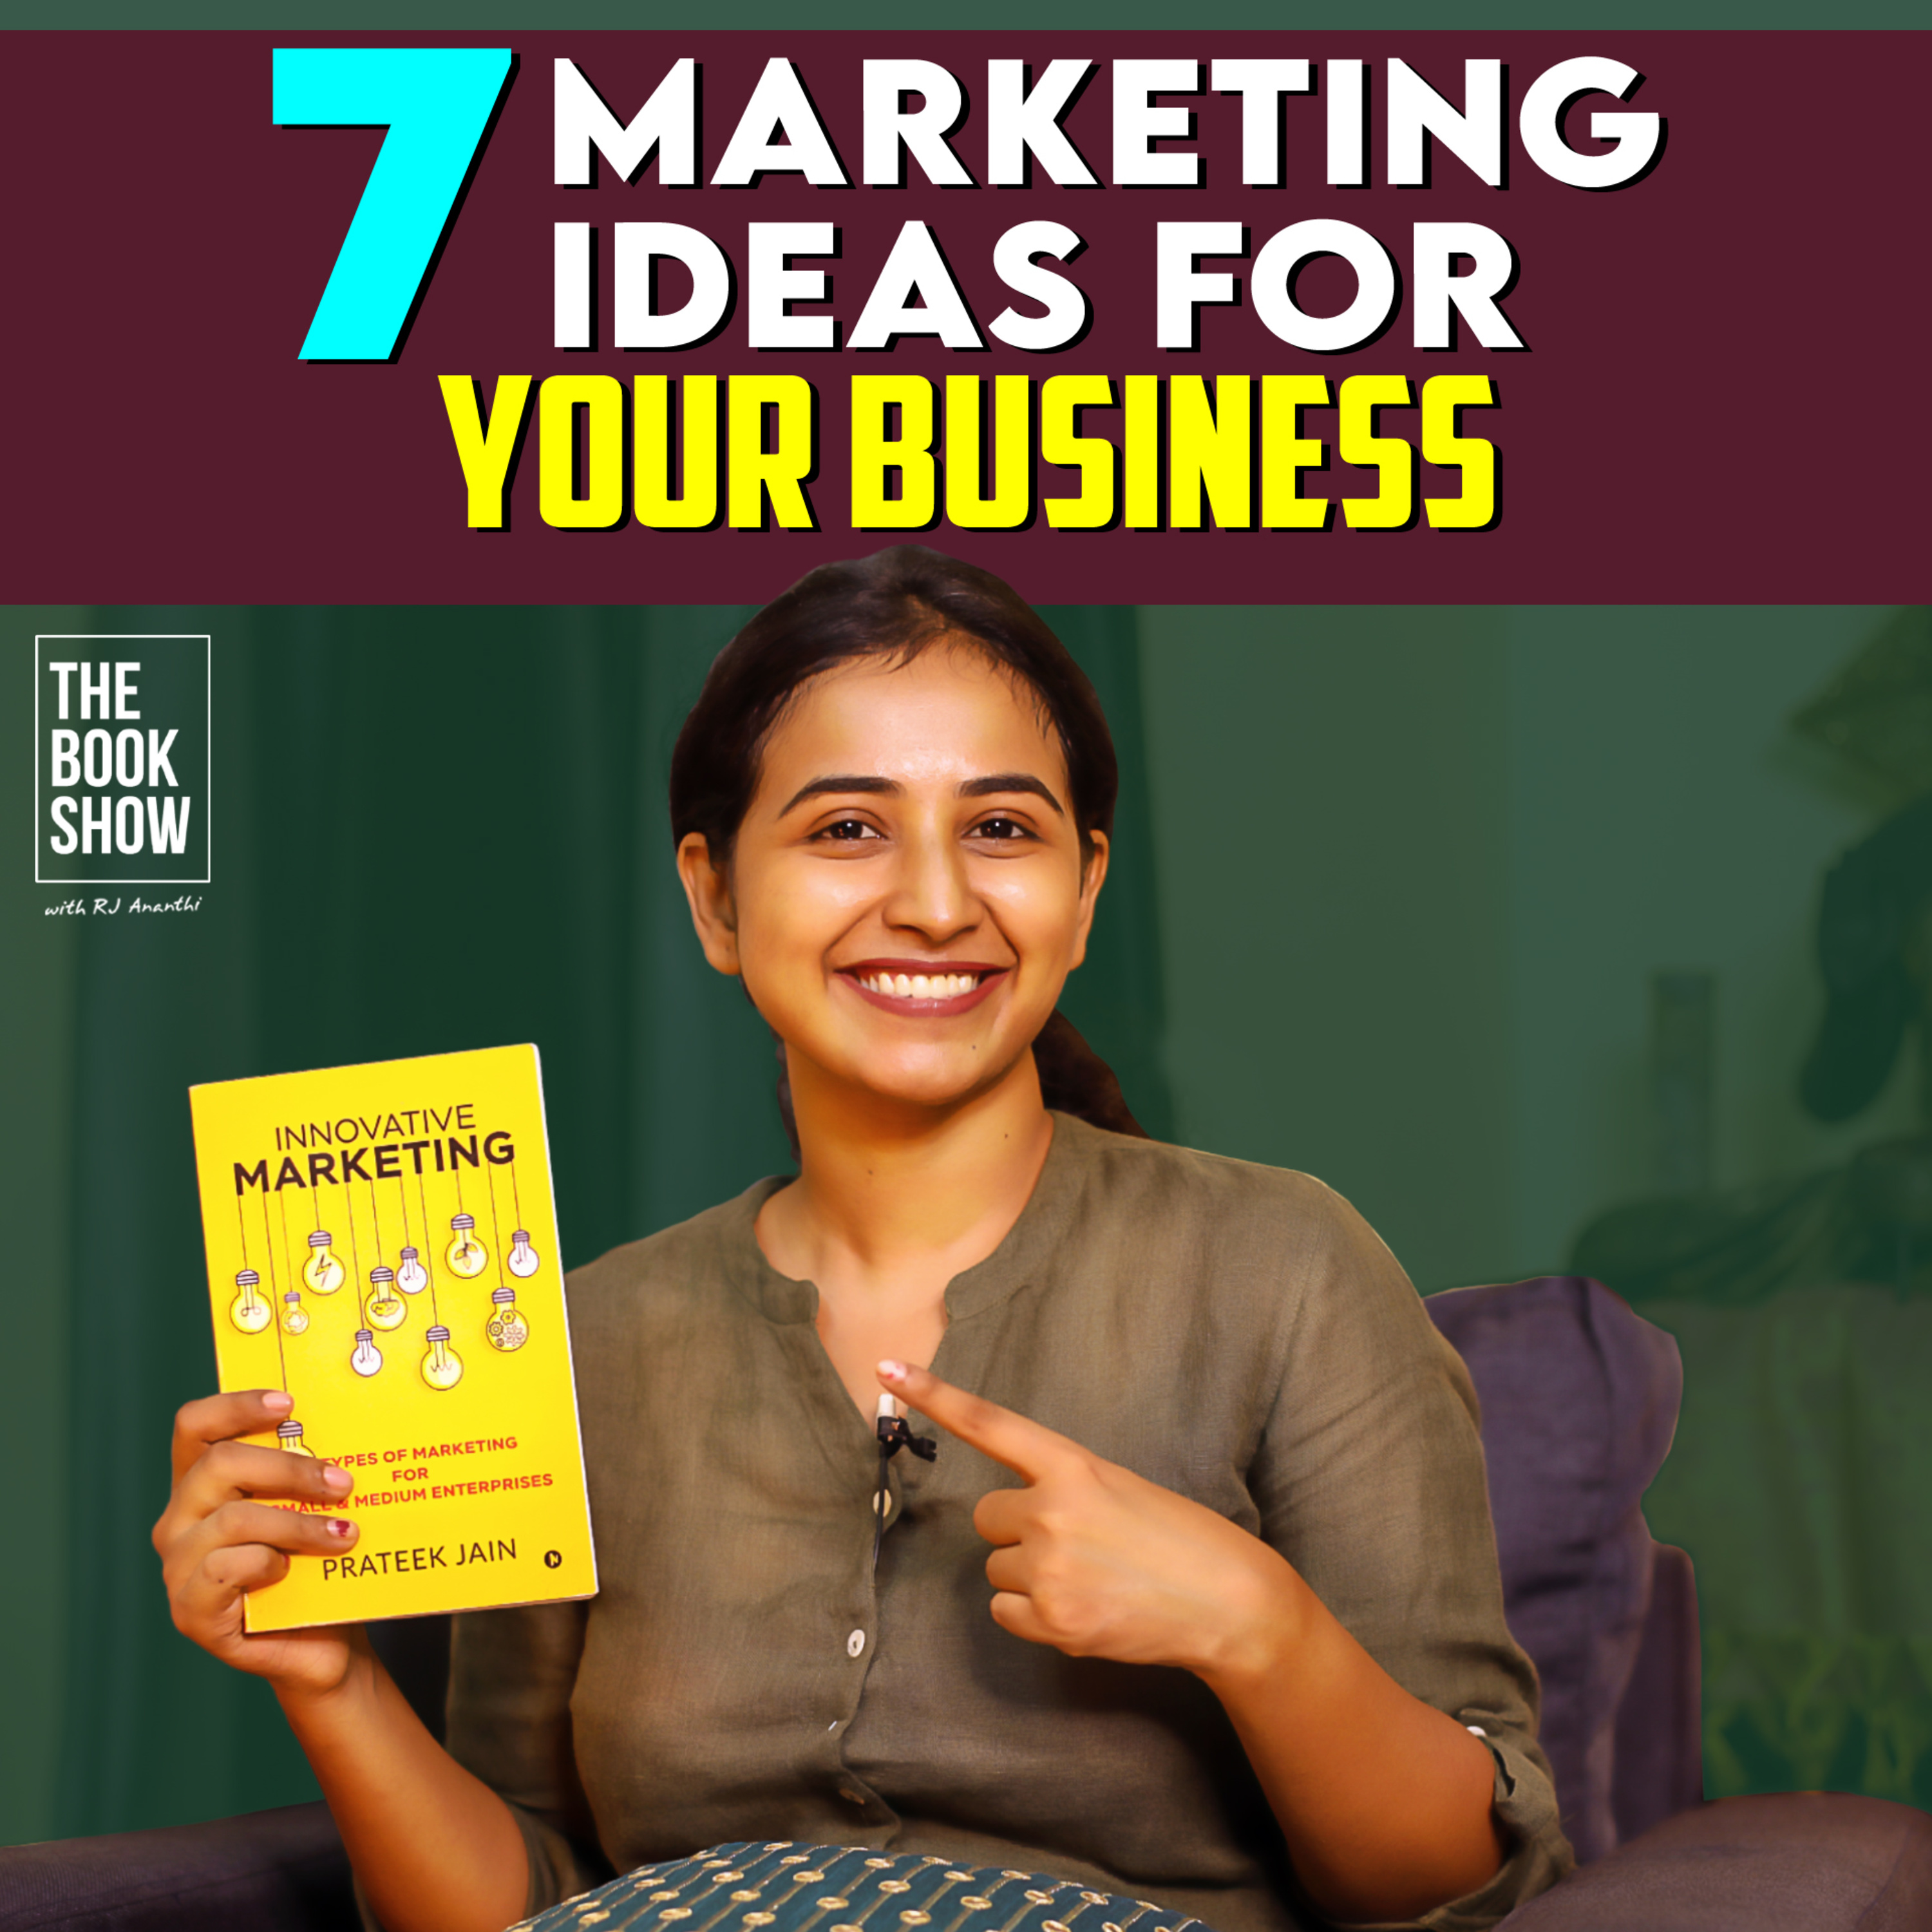 7 Marketing Ideas For Your Business   The BookShow ft. RJ Ananthi   Innovative Marketing